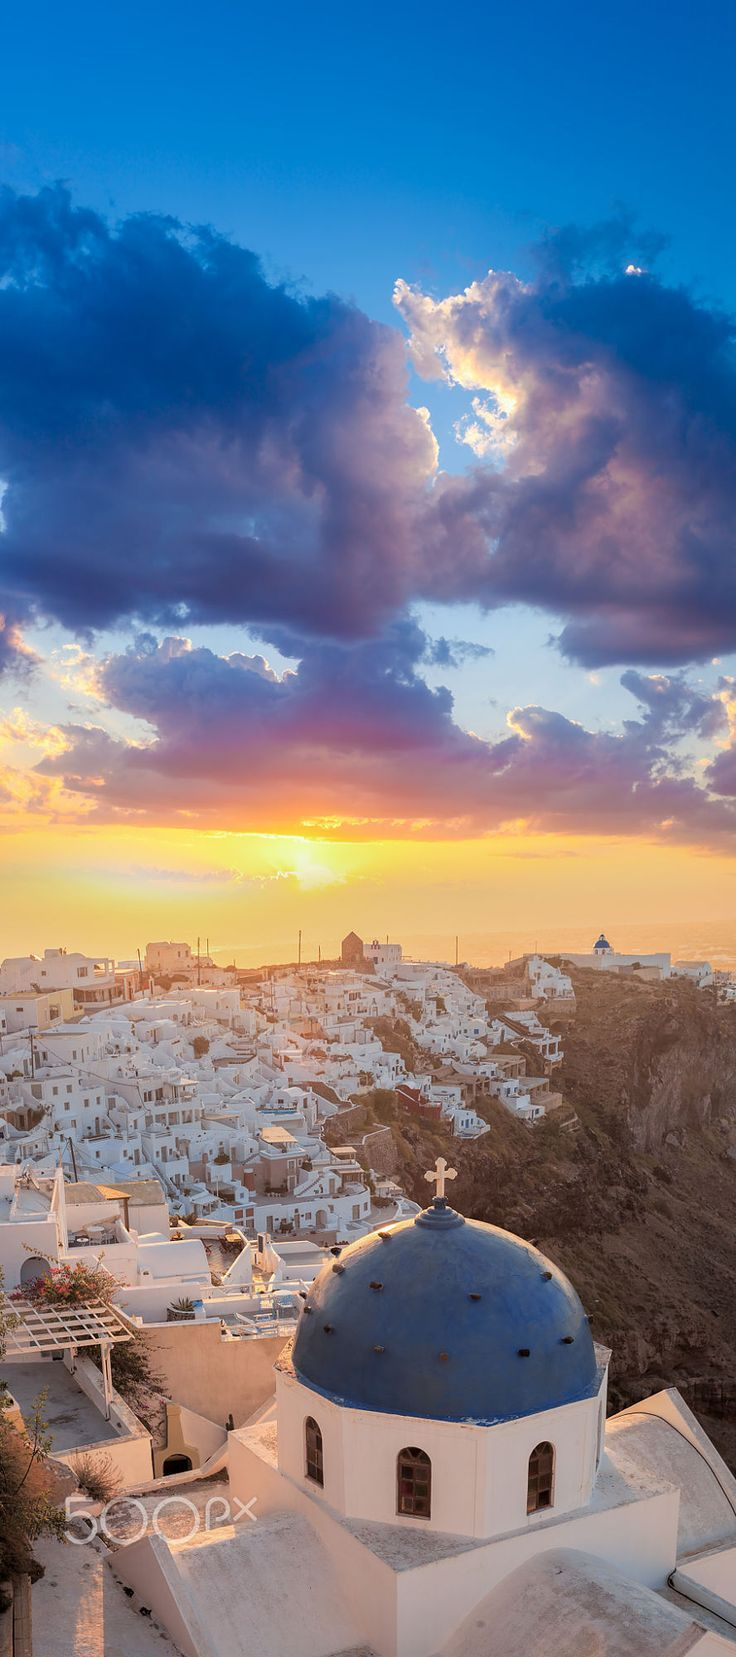 Greece Travel Inspiration - Santorini, Greece.